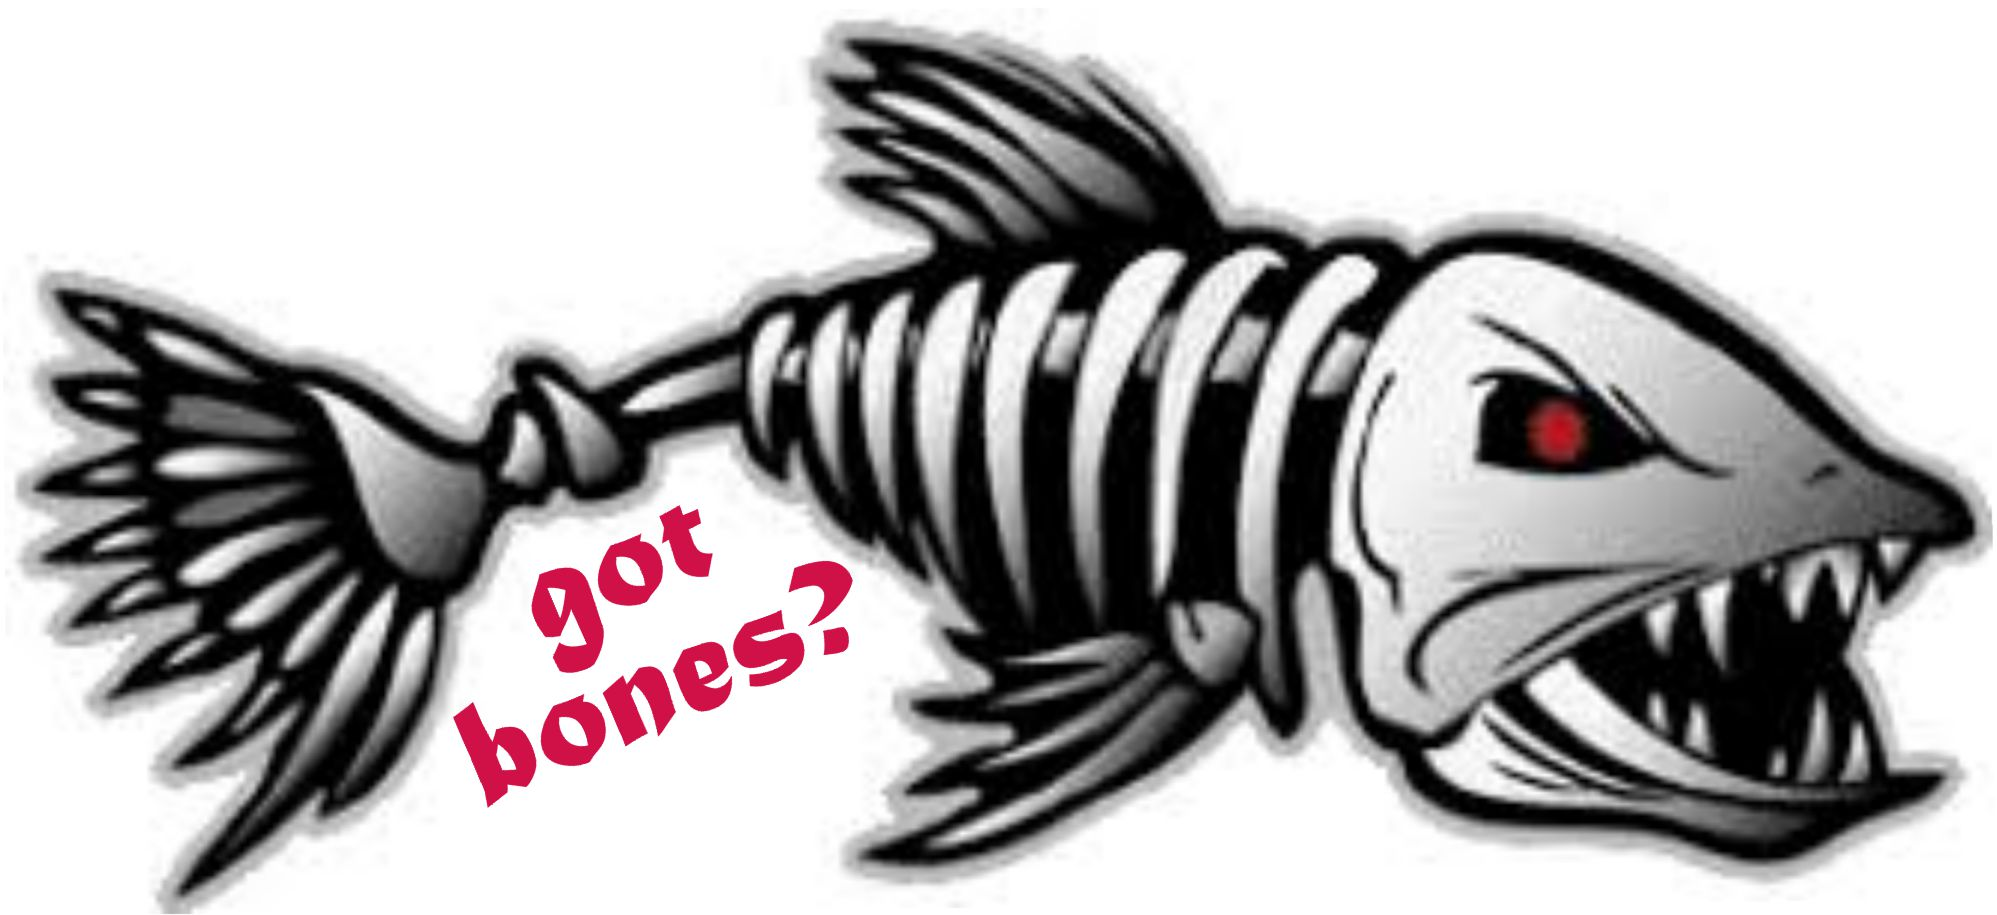 Got Bones Fish Skull Decal